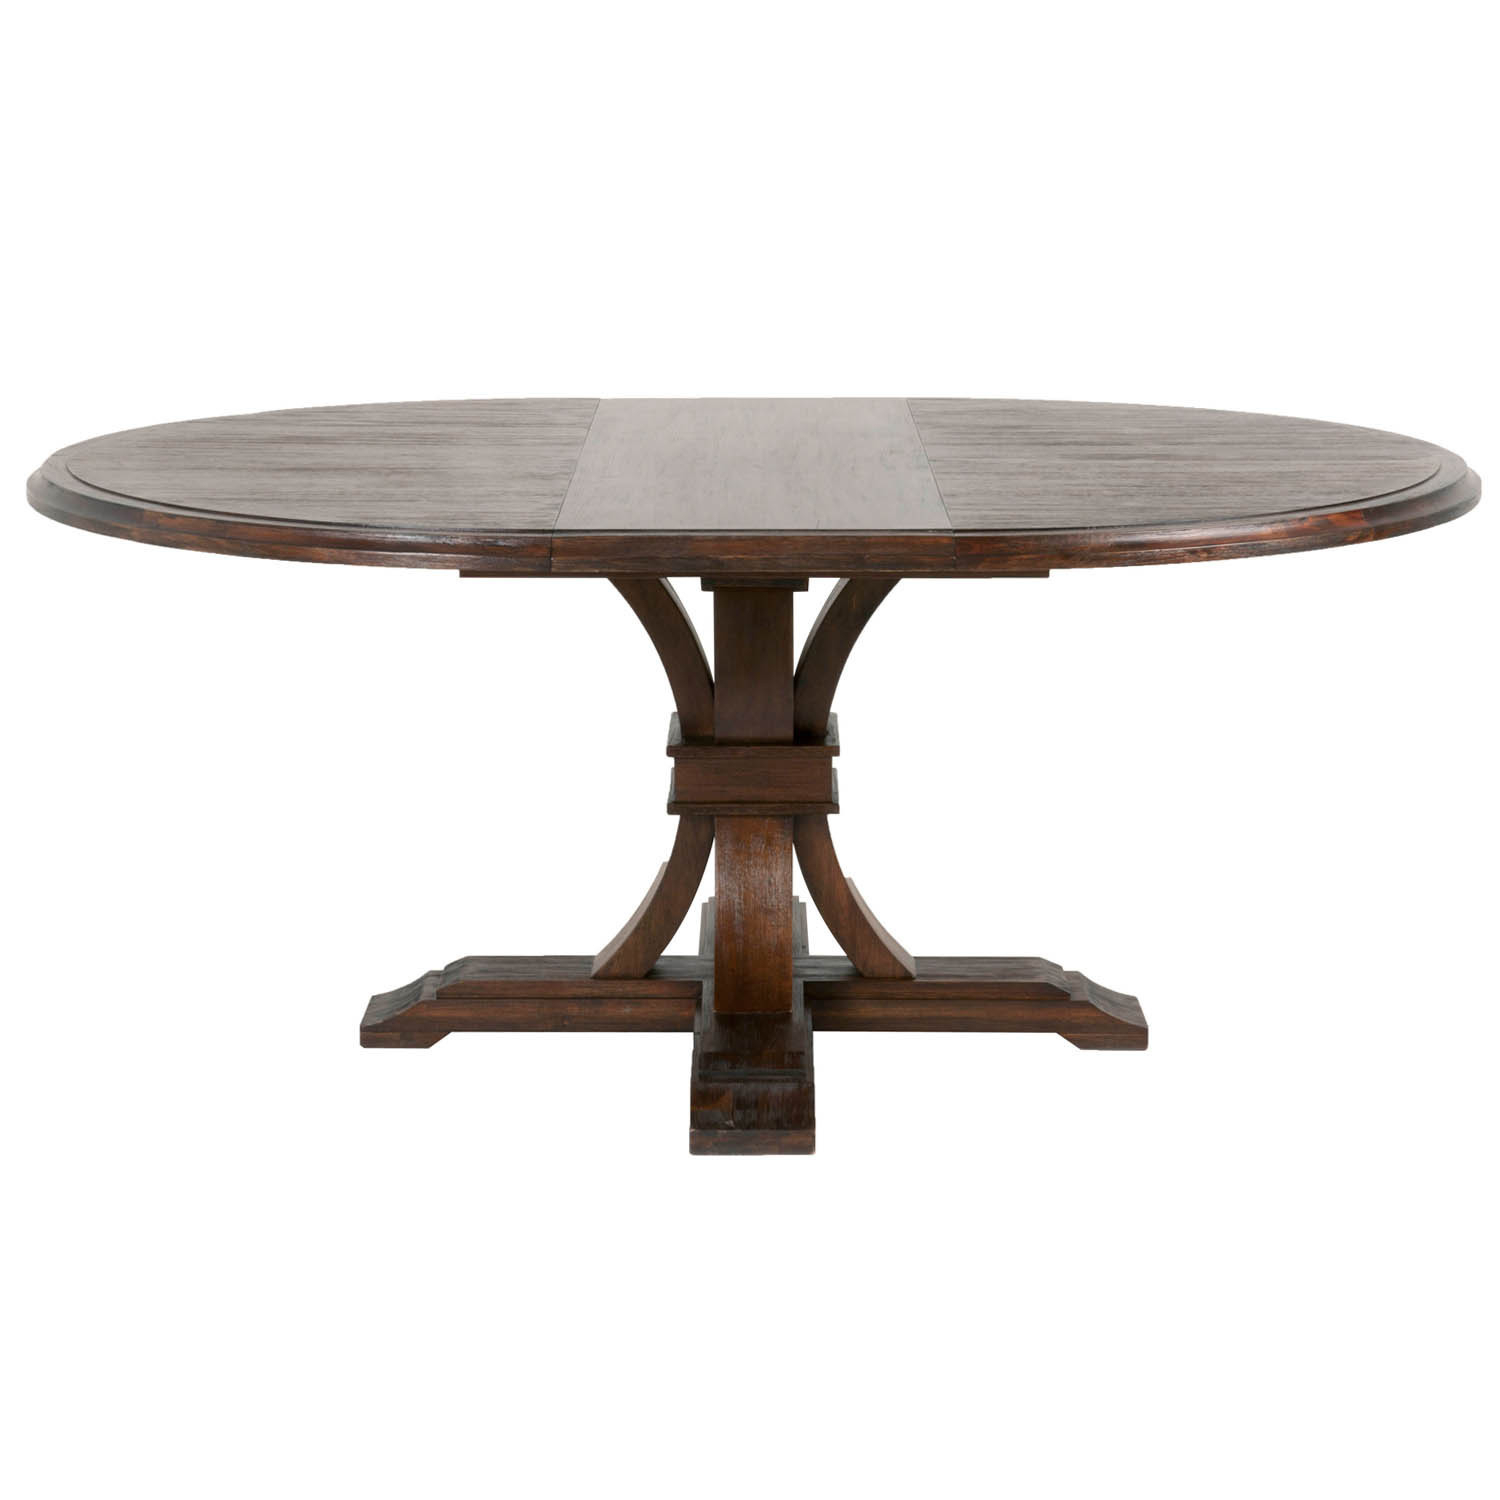 Darby Round Extension Dining Table, Rustic Java – Brown Pertaining To Newest Rustic Mahogany Extending Dining Tables (View 7 of 25)